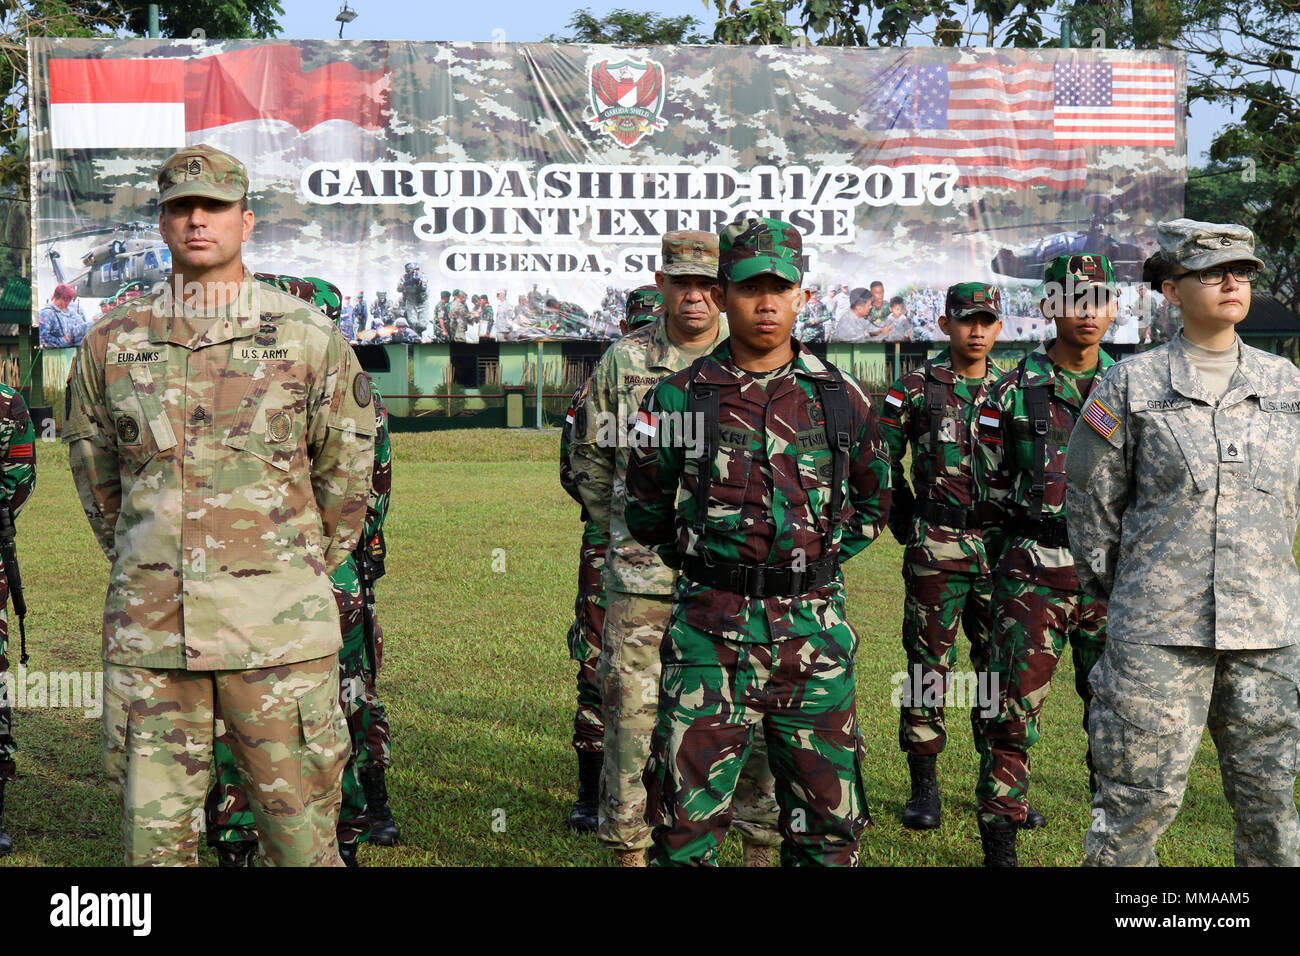 CIBENDA, Indonesia - Soldiers with the Tentara Nasional Indonesia Army (TNI-AD) and U.S. Army stood side-by-side on a parade field during the closing ceremony that officially marked the end of the Garuda Shield 2017 exercise, September 29, 2017 (U.S. Army National Guard photo by Spc. Matthew A. Foster) Stock Photo